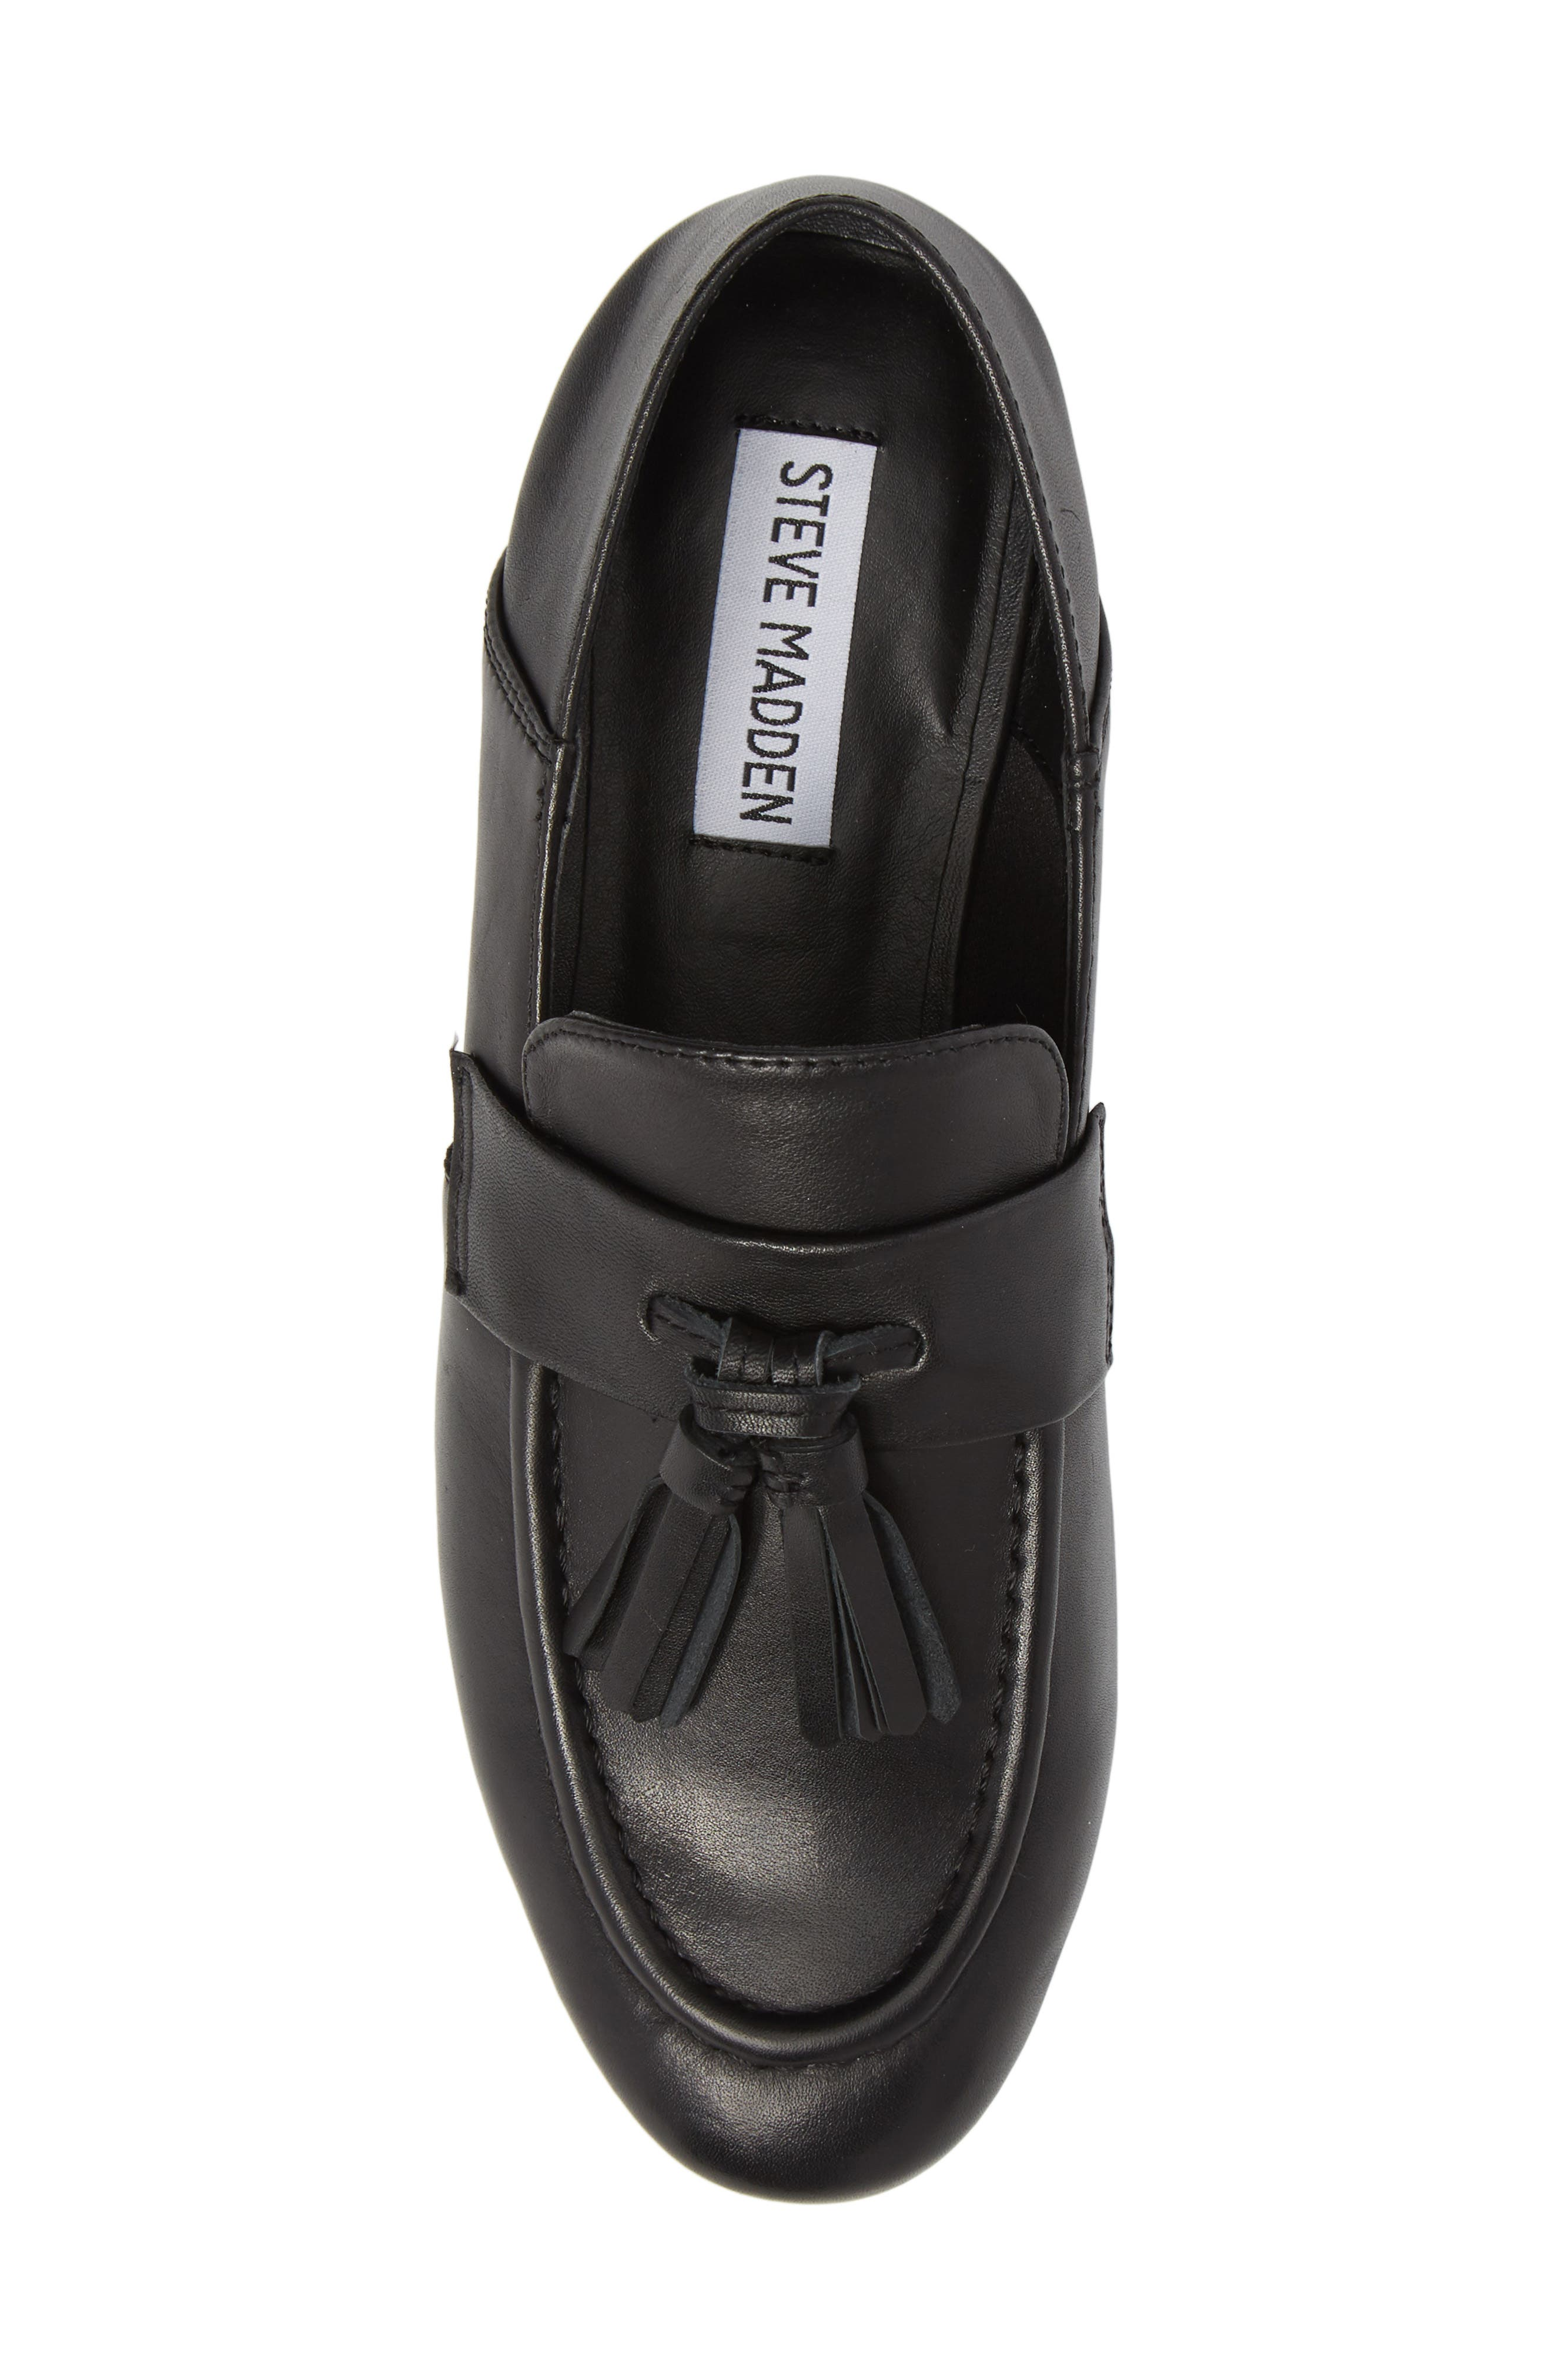 Beck Convertible Tasseled Loafer,                             Alternate thumbnail 6, color,                             Black Leather